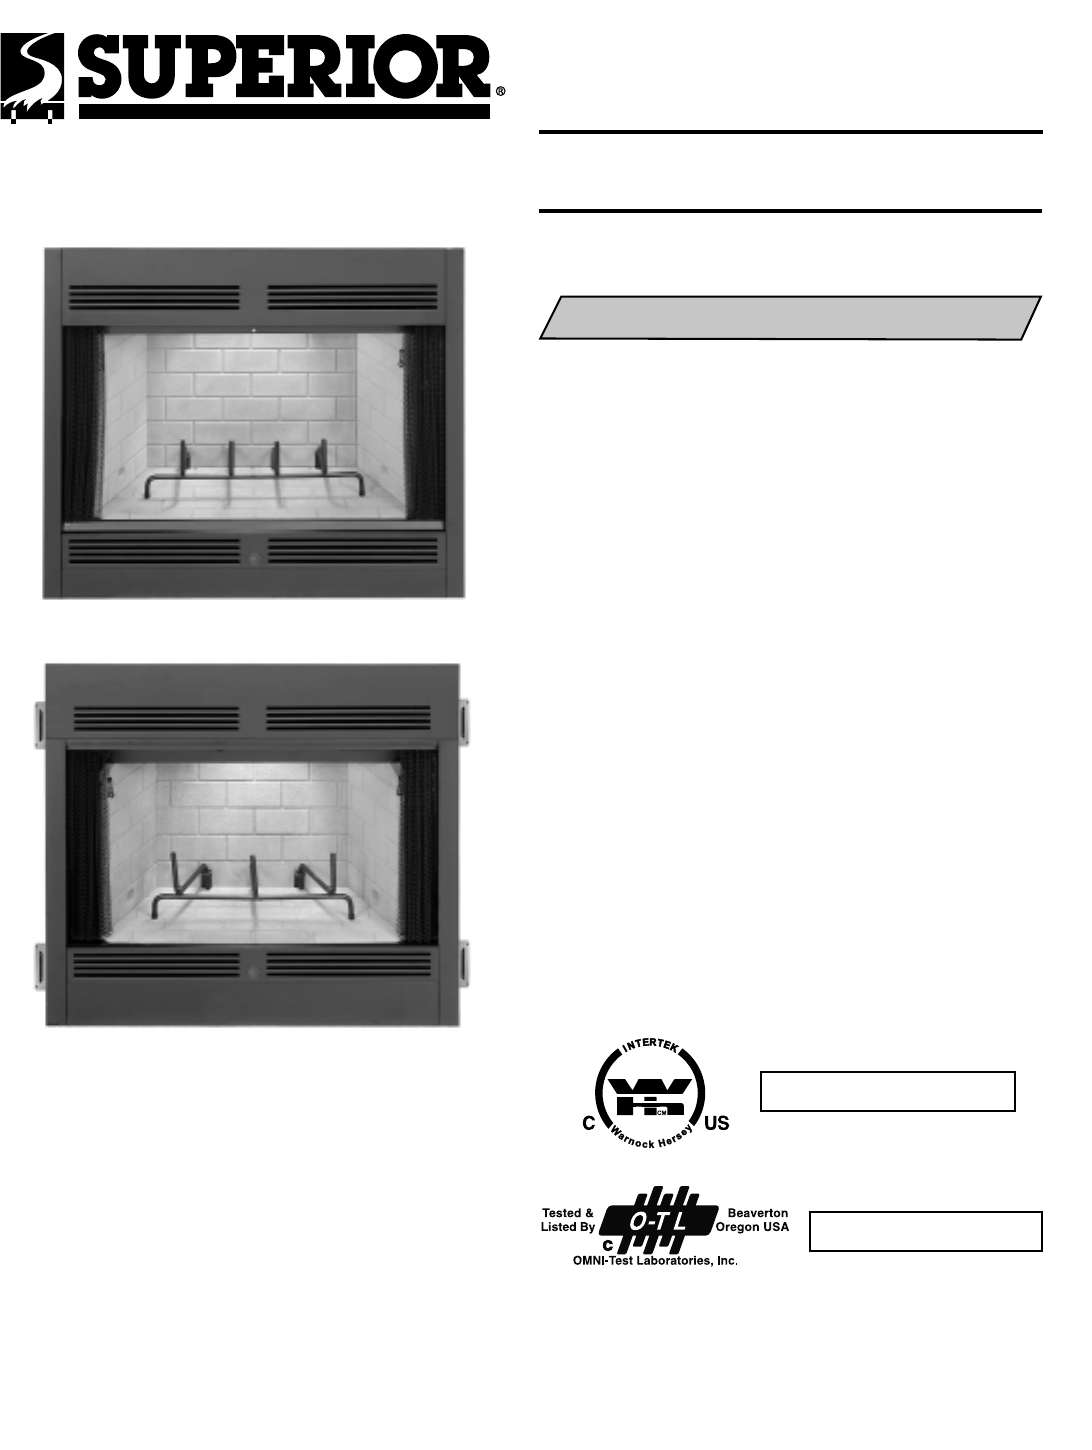 Lennox Hearth Indoor Fireplace BR 36 42 2 User Guide